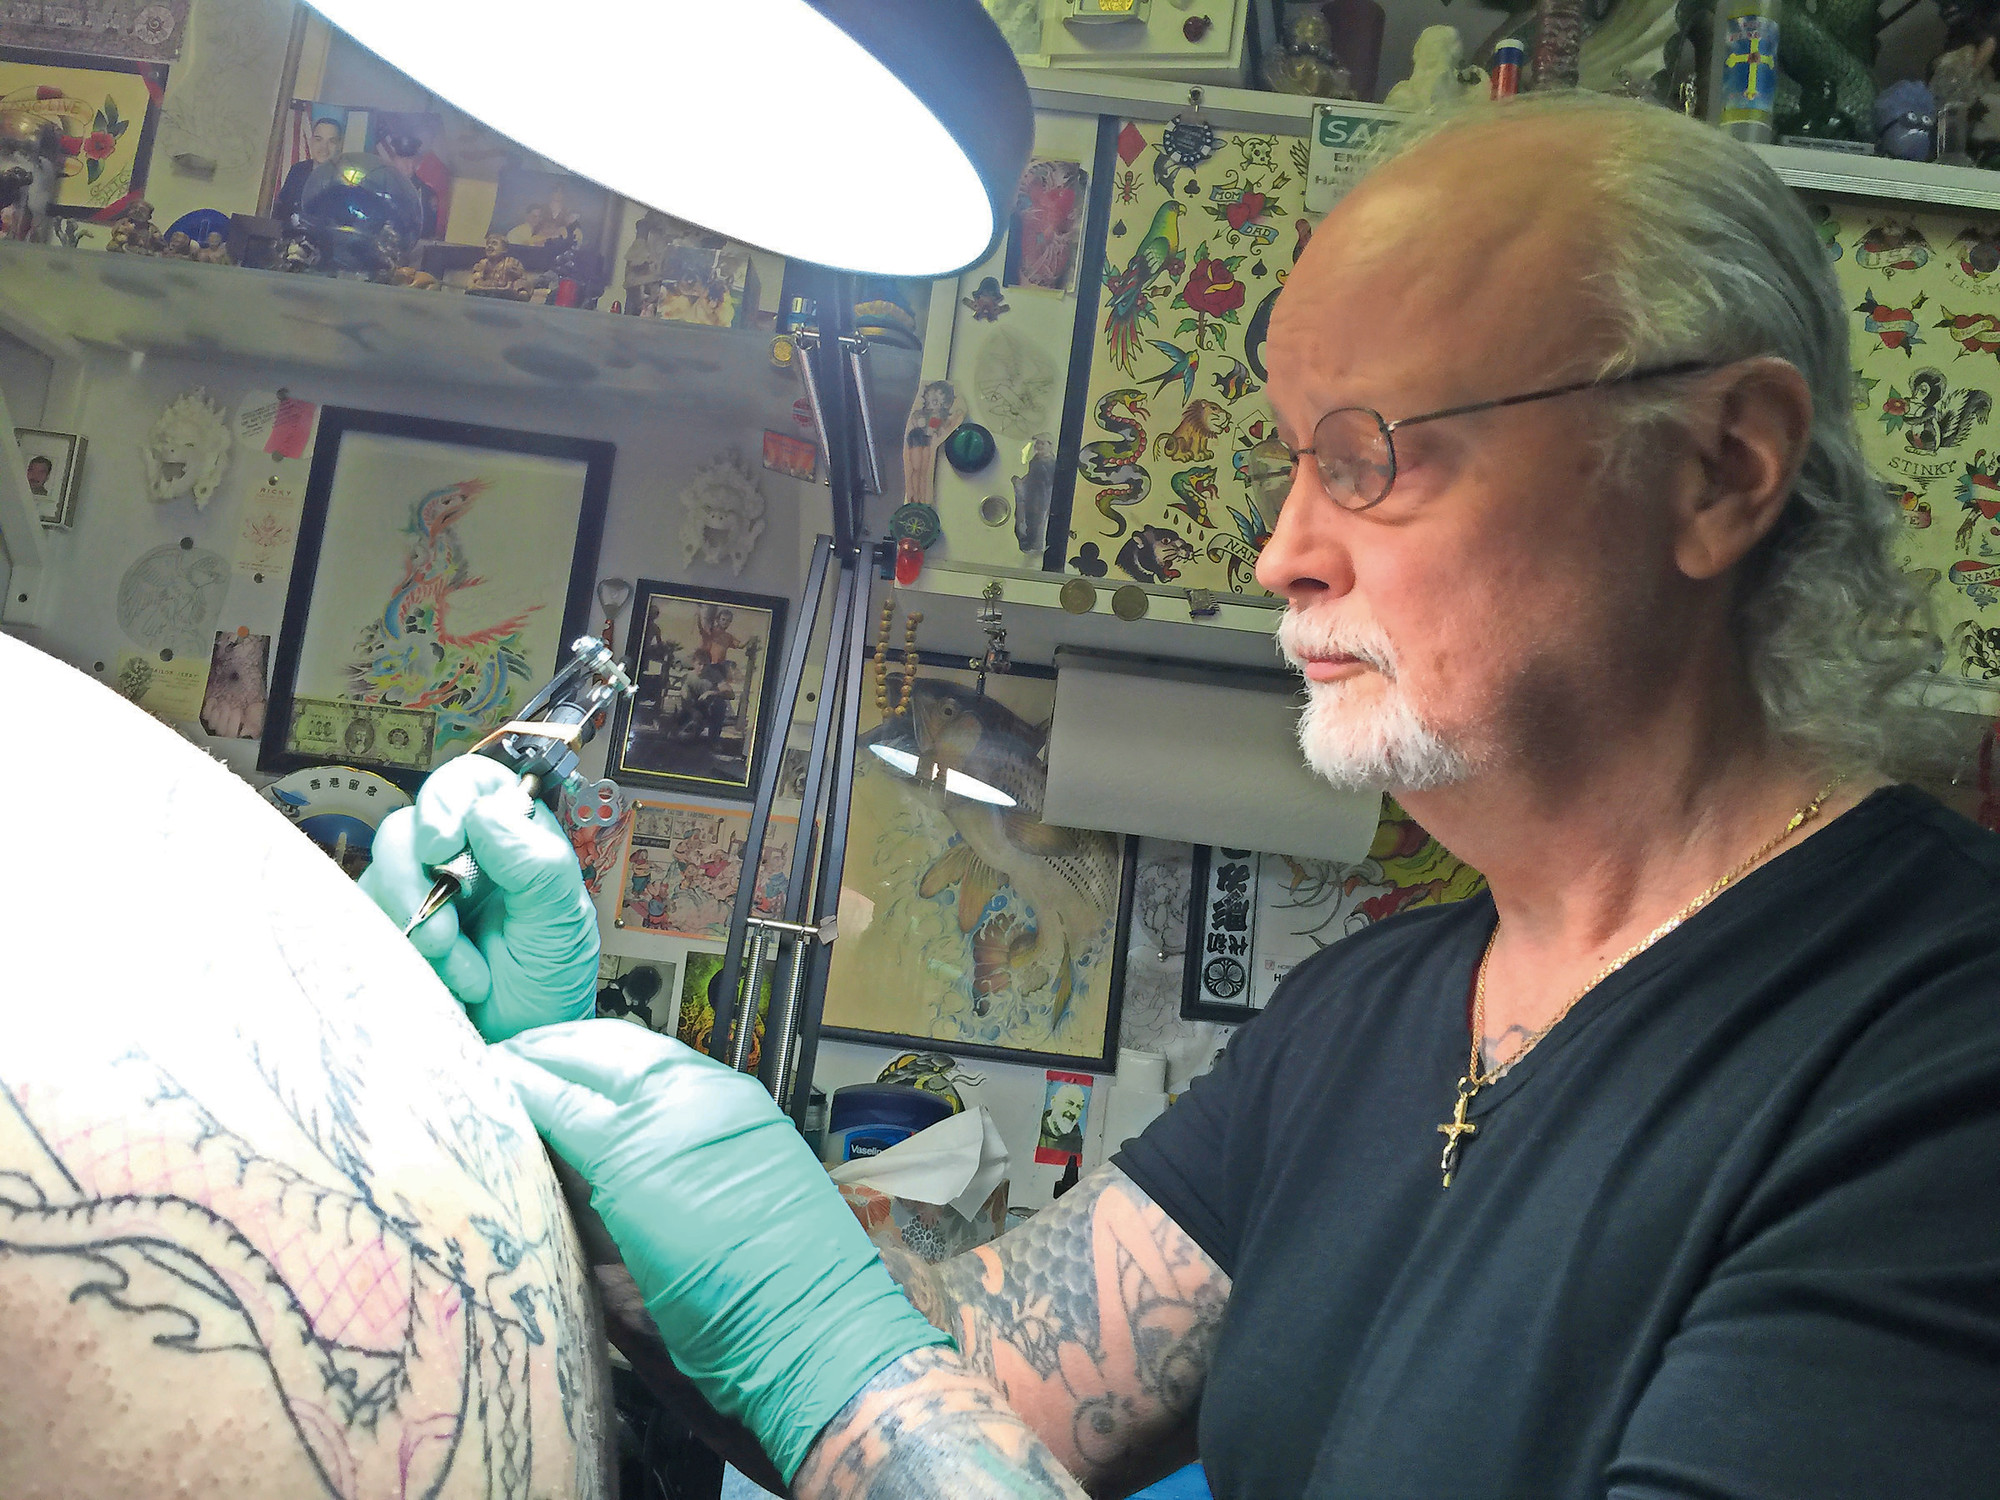 Richie Montgomery took over Long Island Tattoo from Peter Poulos in 1975. He has since renamed the business and moved it east on Hempstead Turnpike twice — once in 1986 and then in 1997, to 1548 Hempstead Turnpike, where he has been ever since